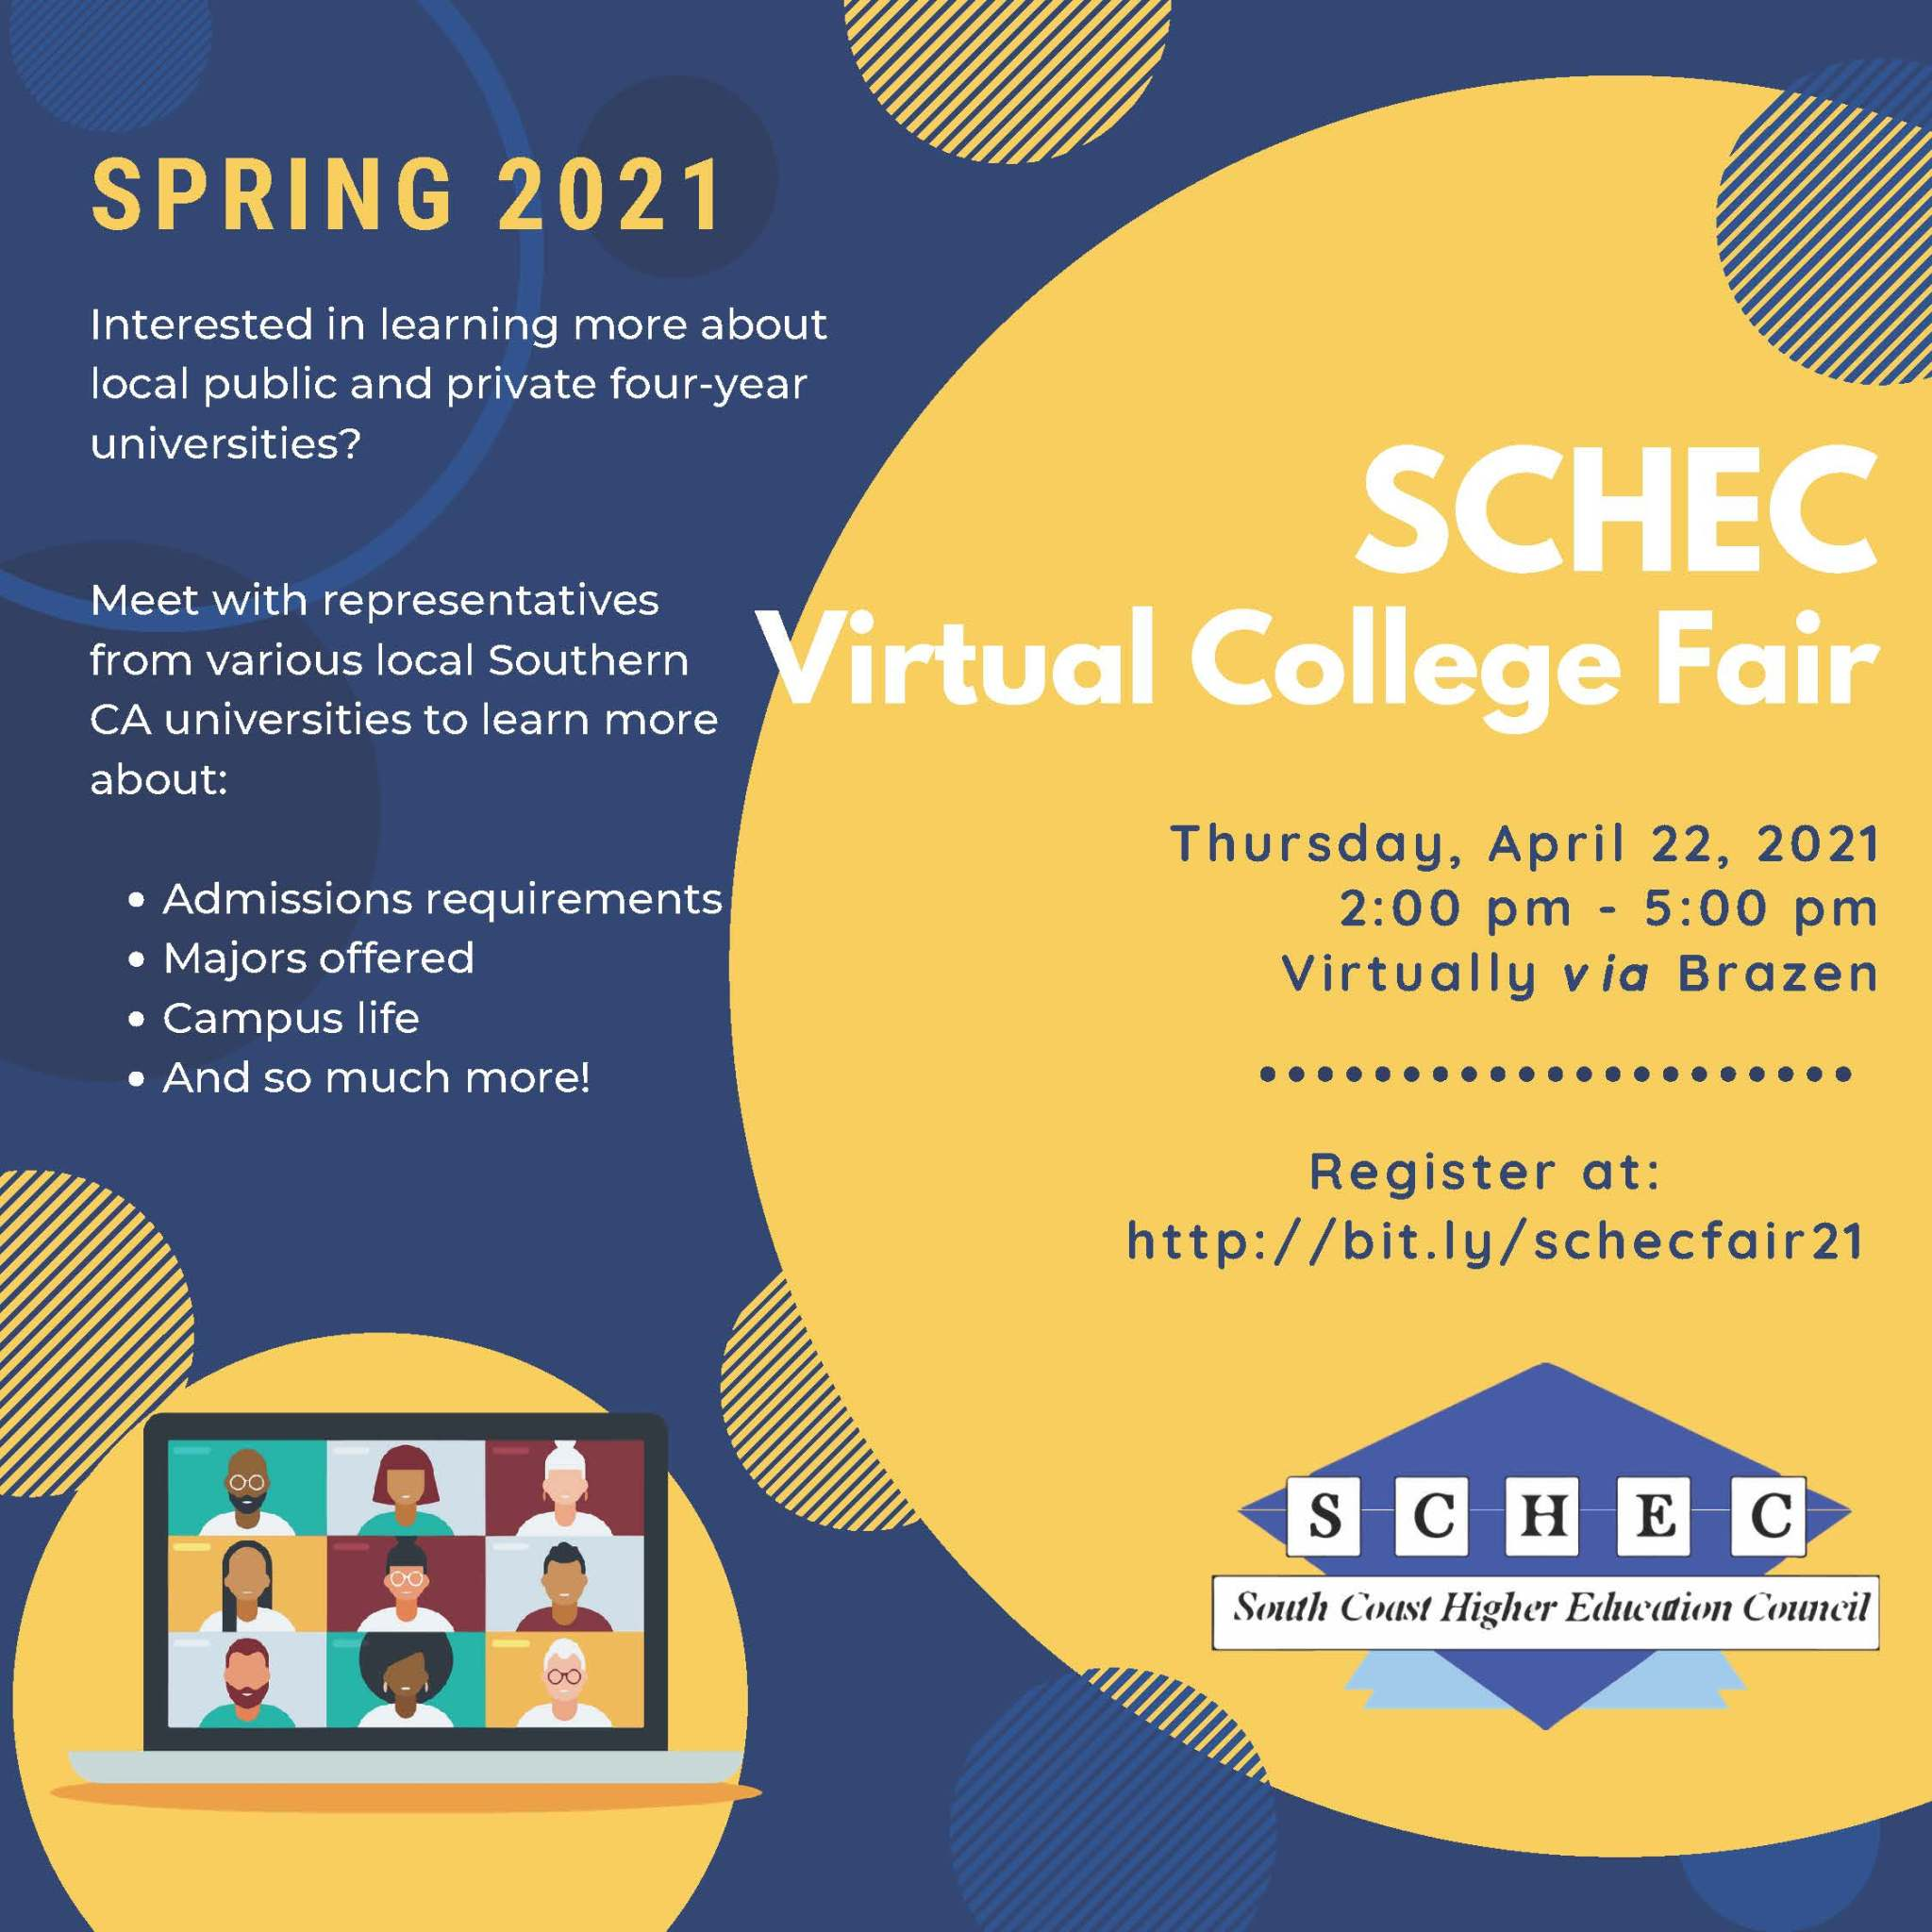 SCHEC Virtual College Fair Flyer